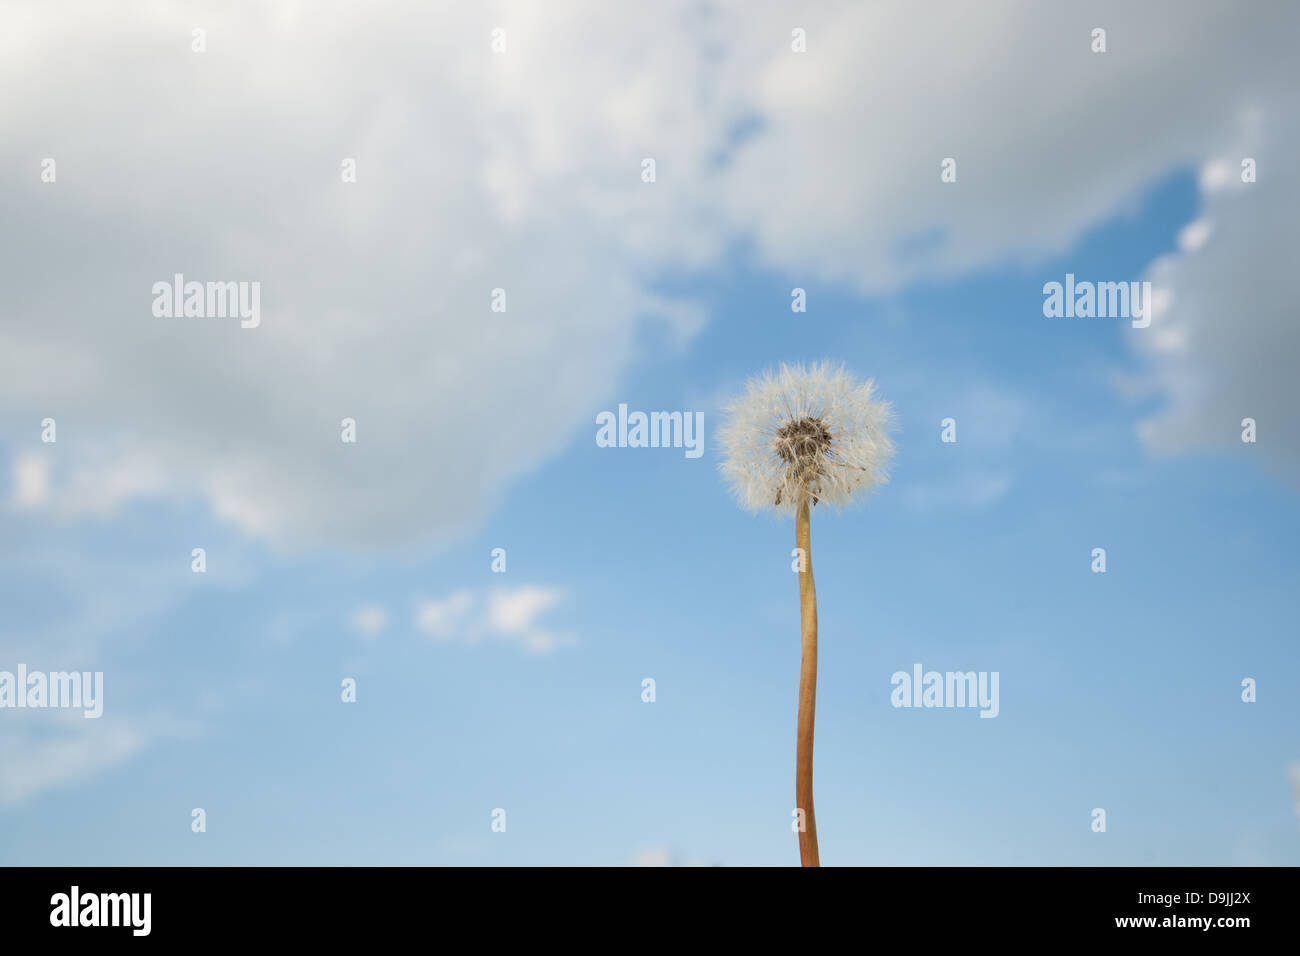 A white dandelion photographed against a blue sky with white clouds - Stock Image